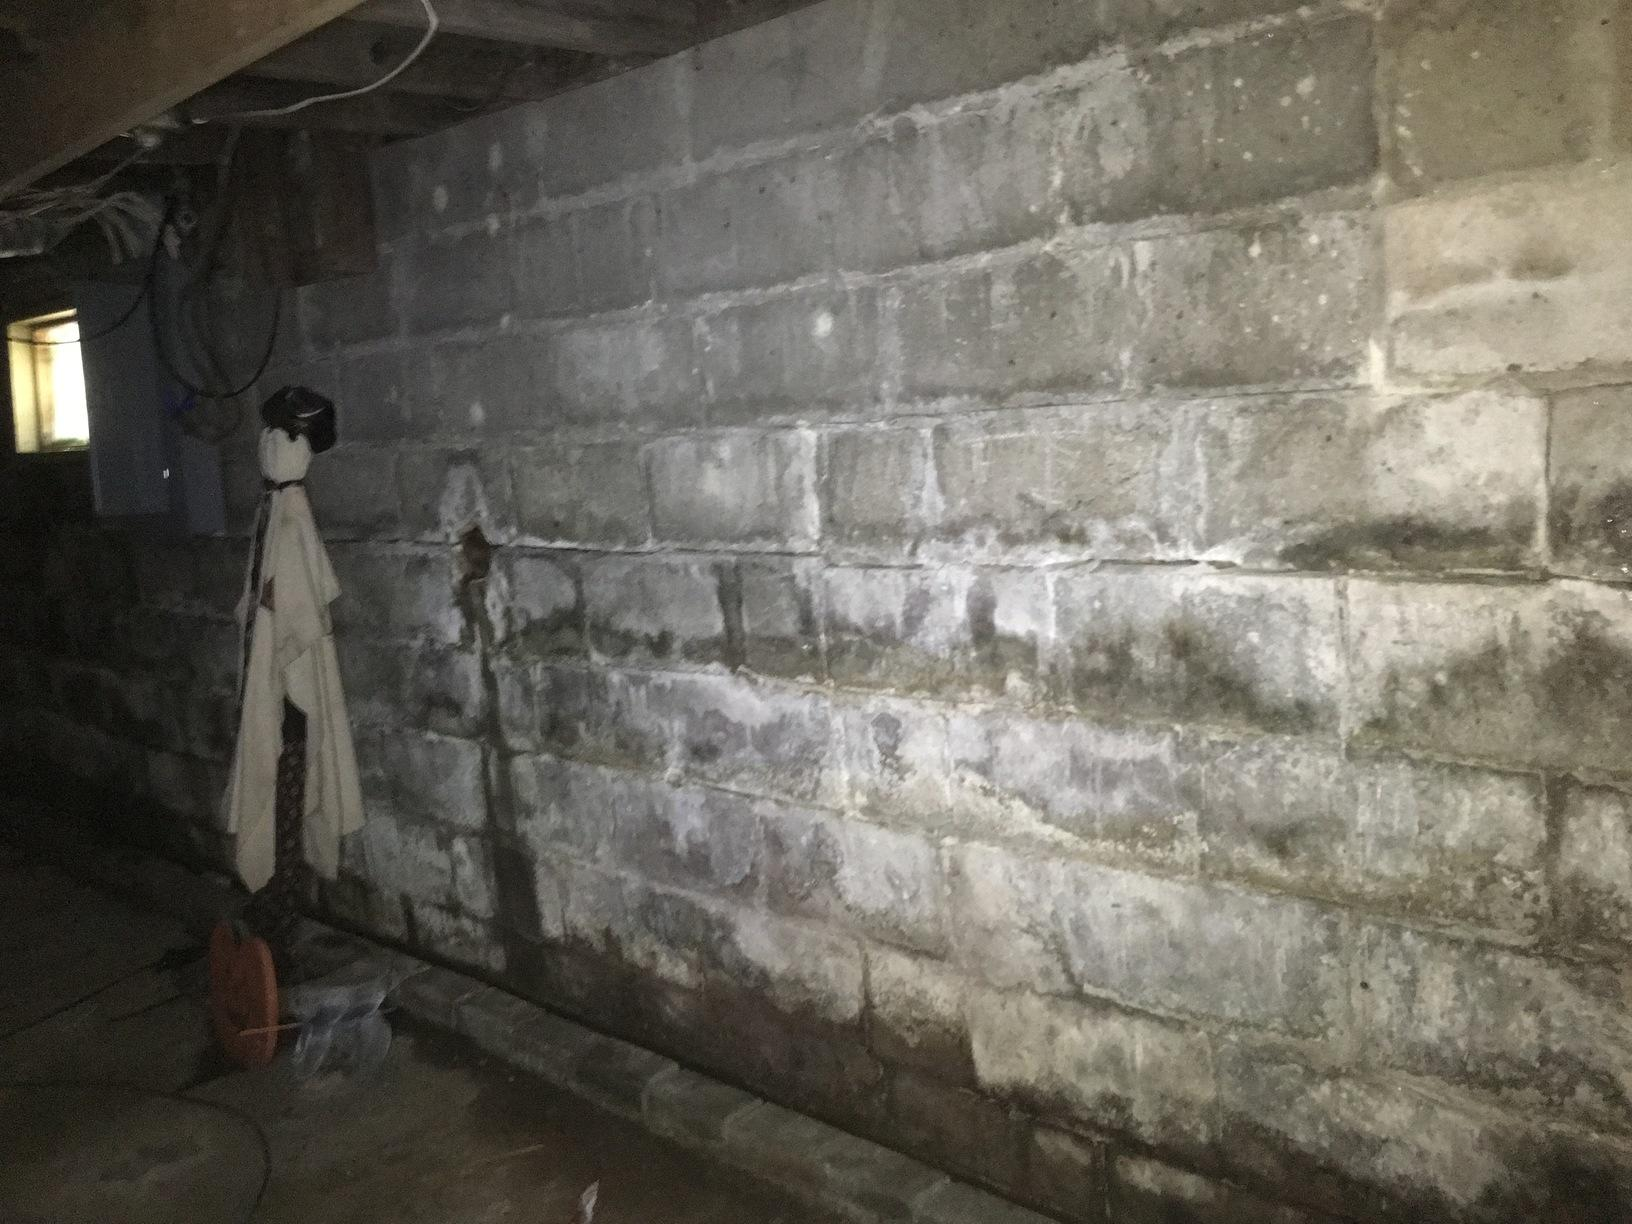 Overview of Cracking and Bulging Foundation in Hartford, KY